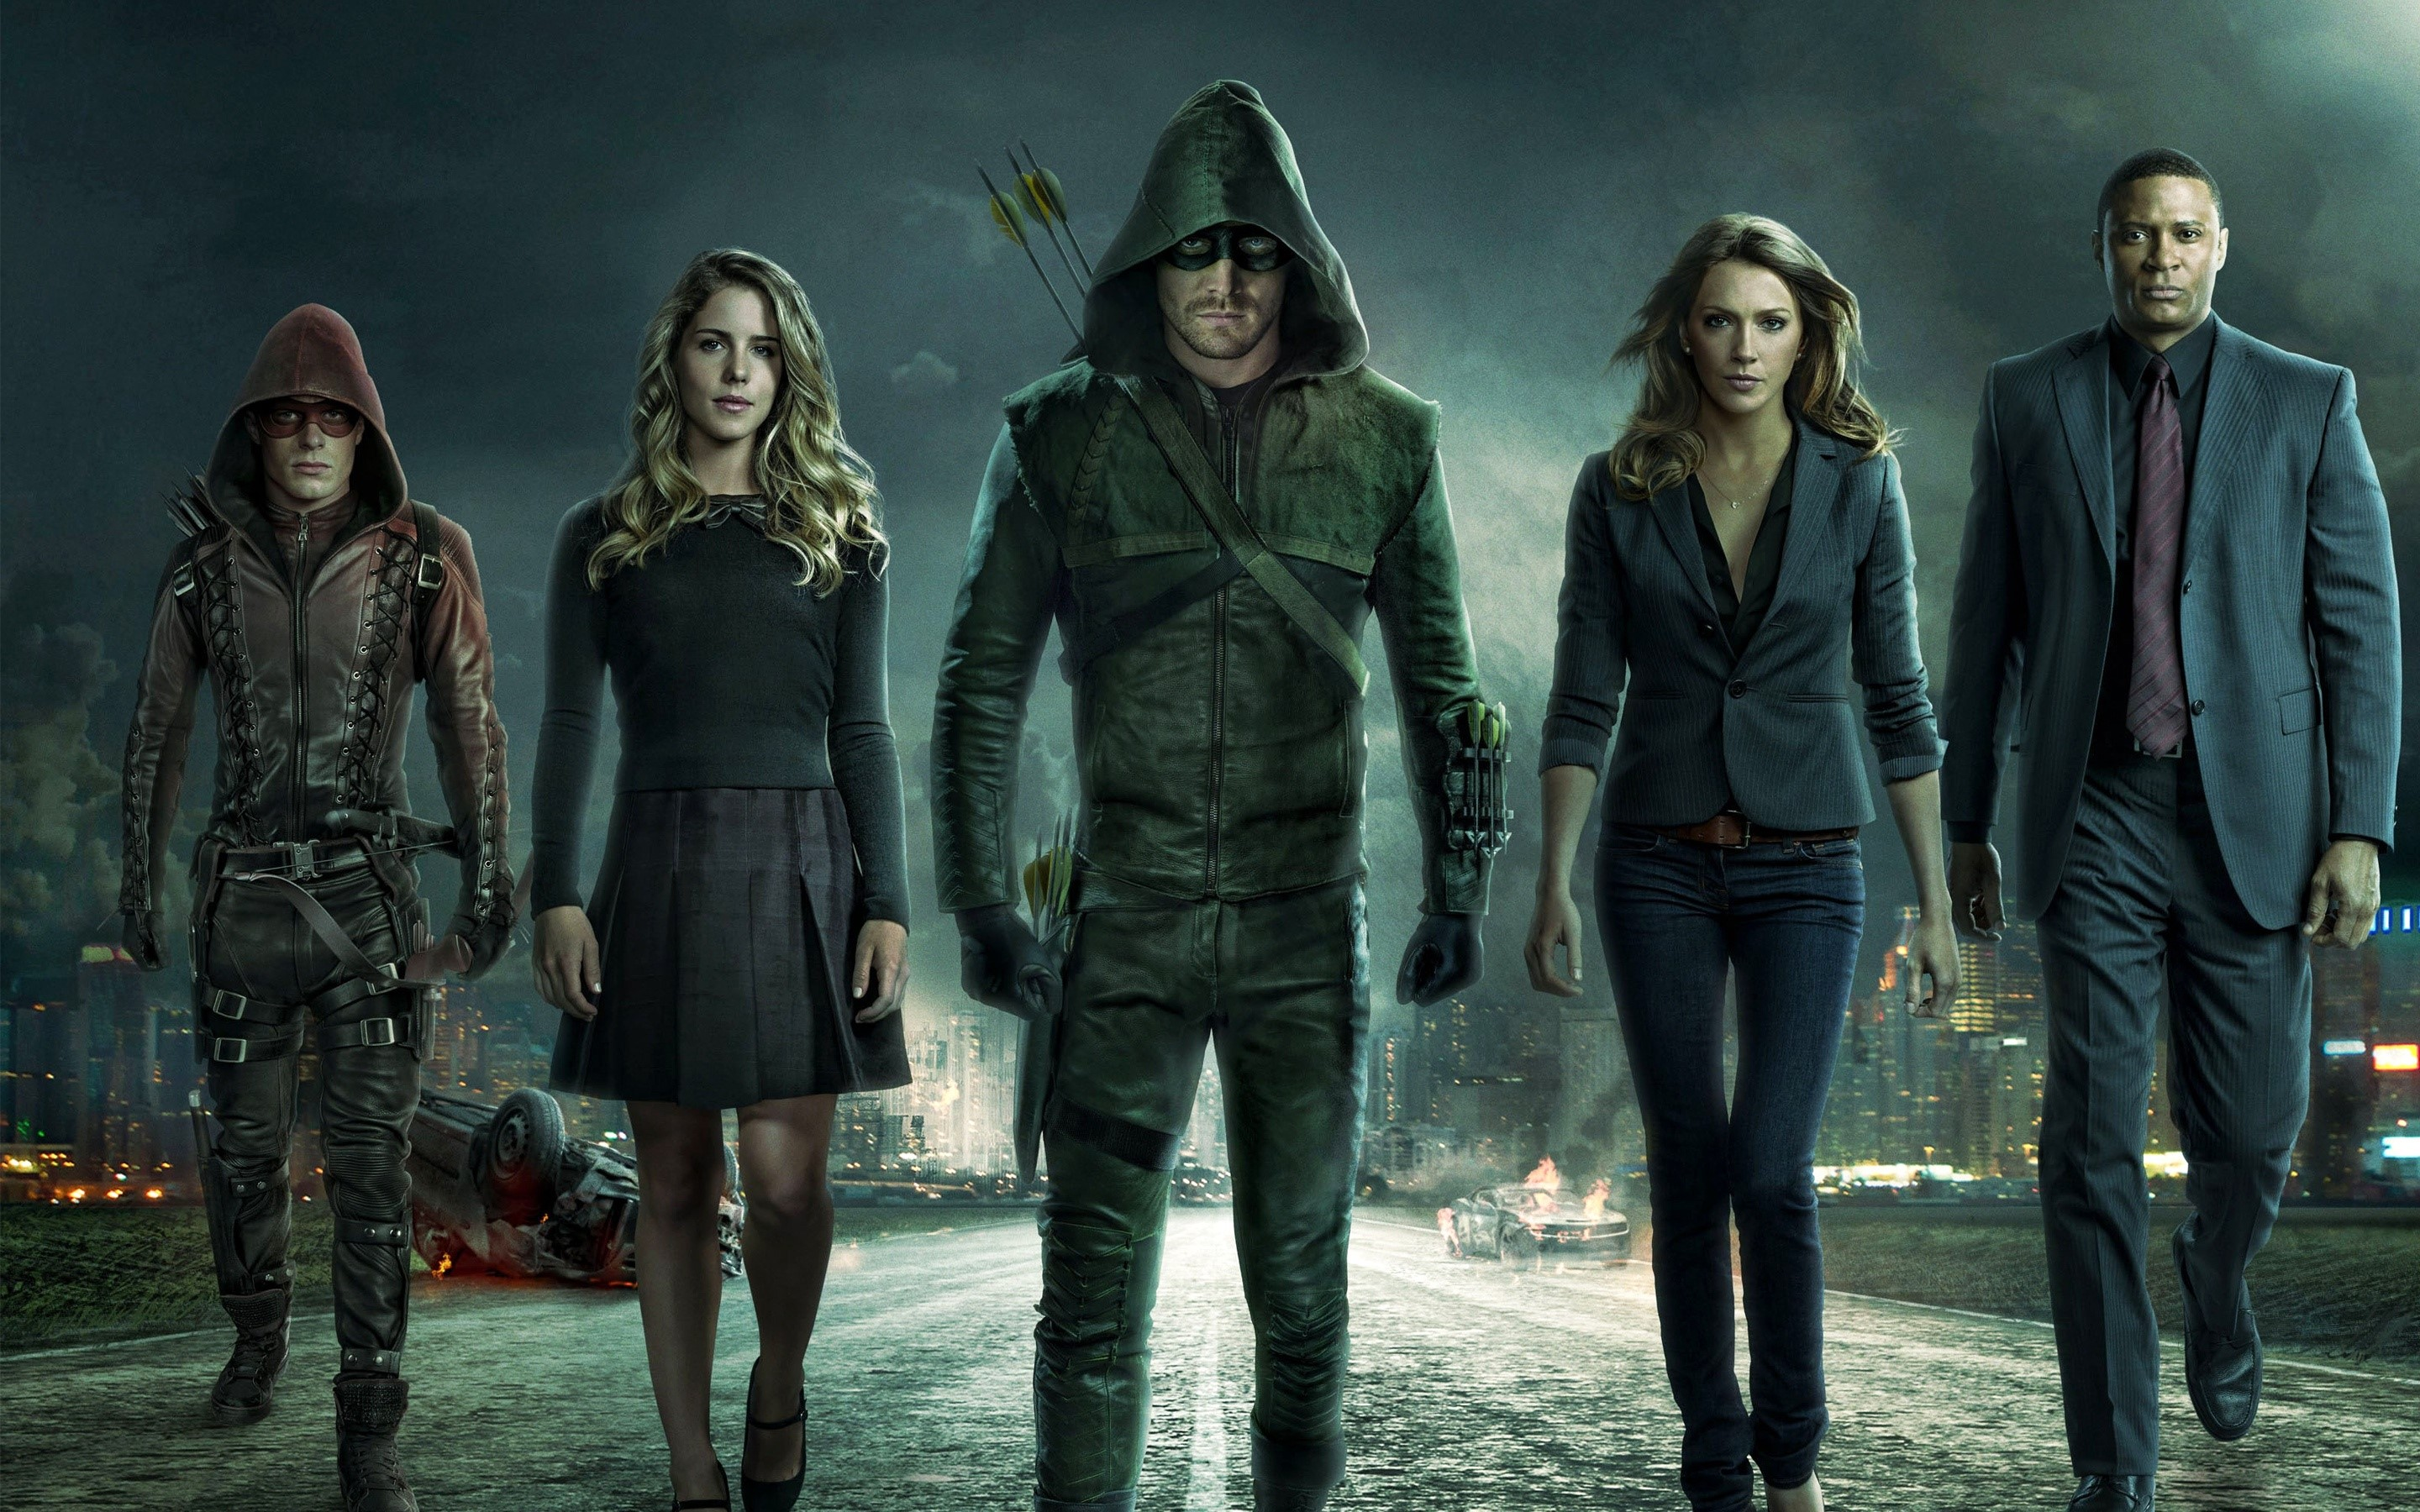 Fondos de pantalla Arrow temporada 3